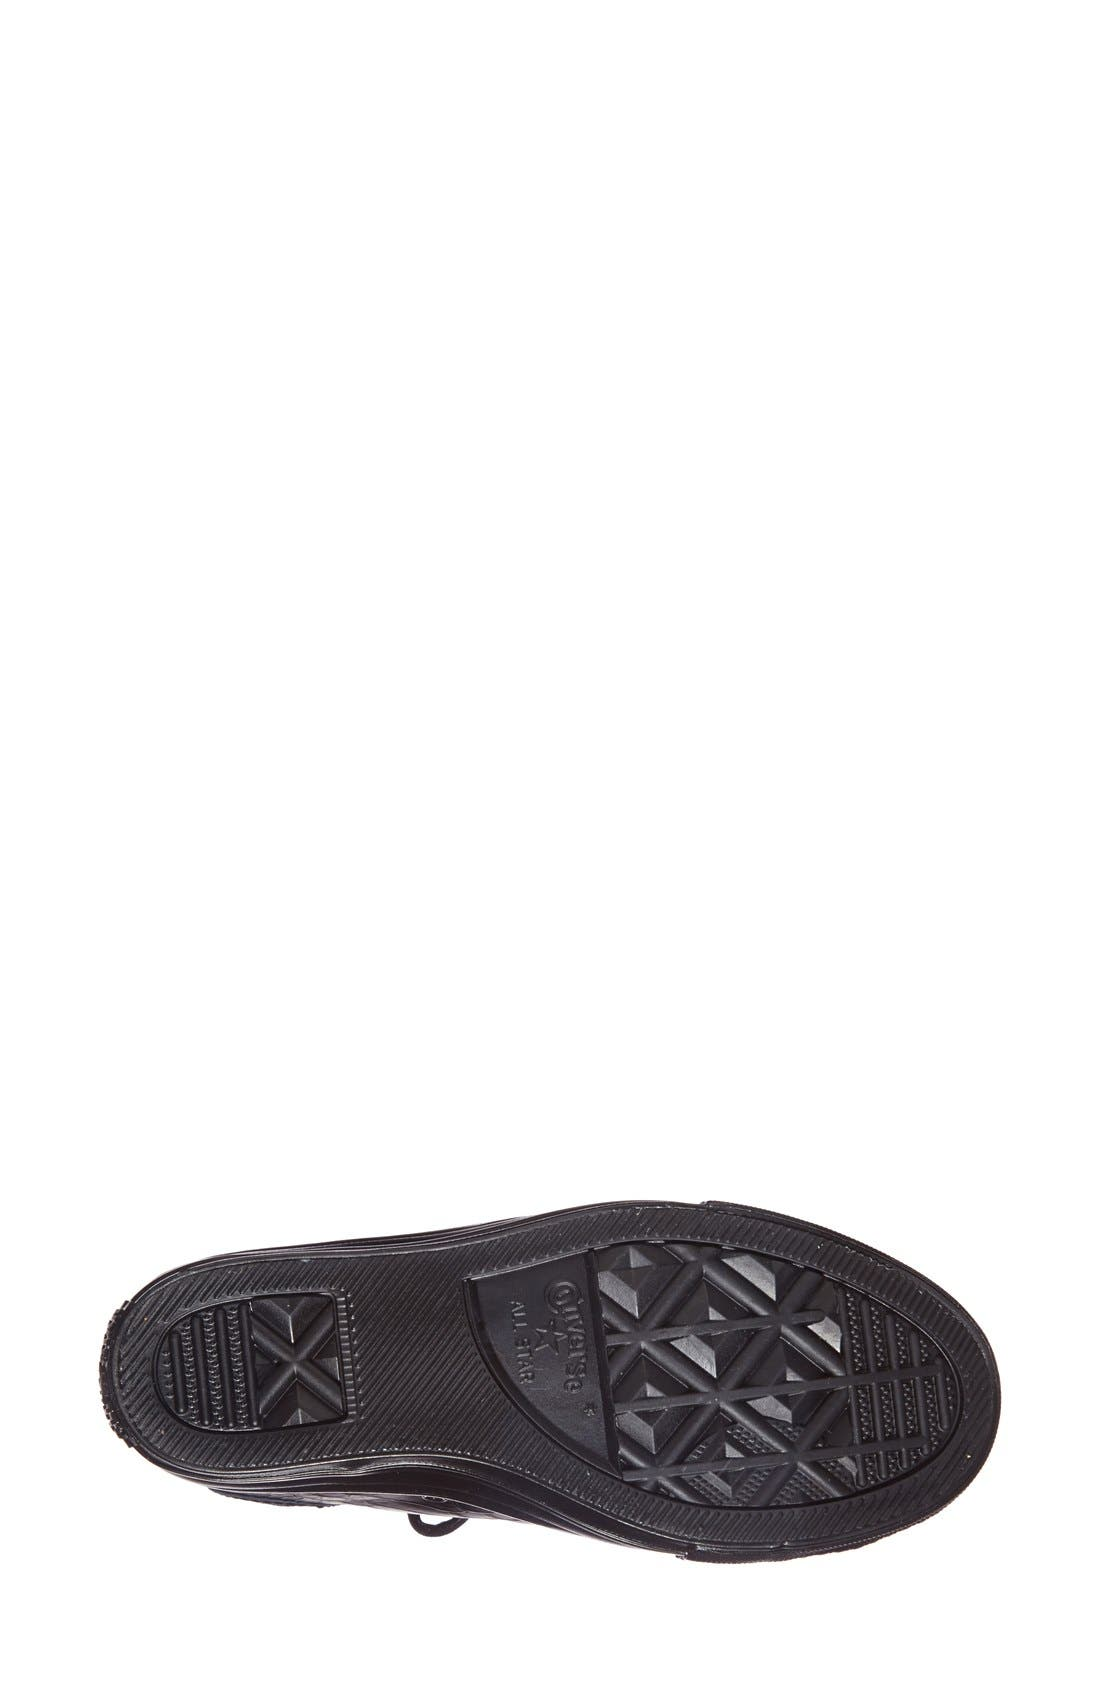 Chuck Taylor<sup>®</sup> All Star<sup>®</sup> 'Embossed Reptile' Wedge Sneaker,                             Alternate thumbnail 4, color,                             001